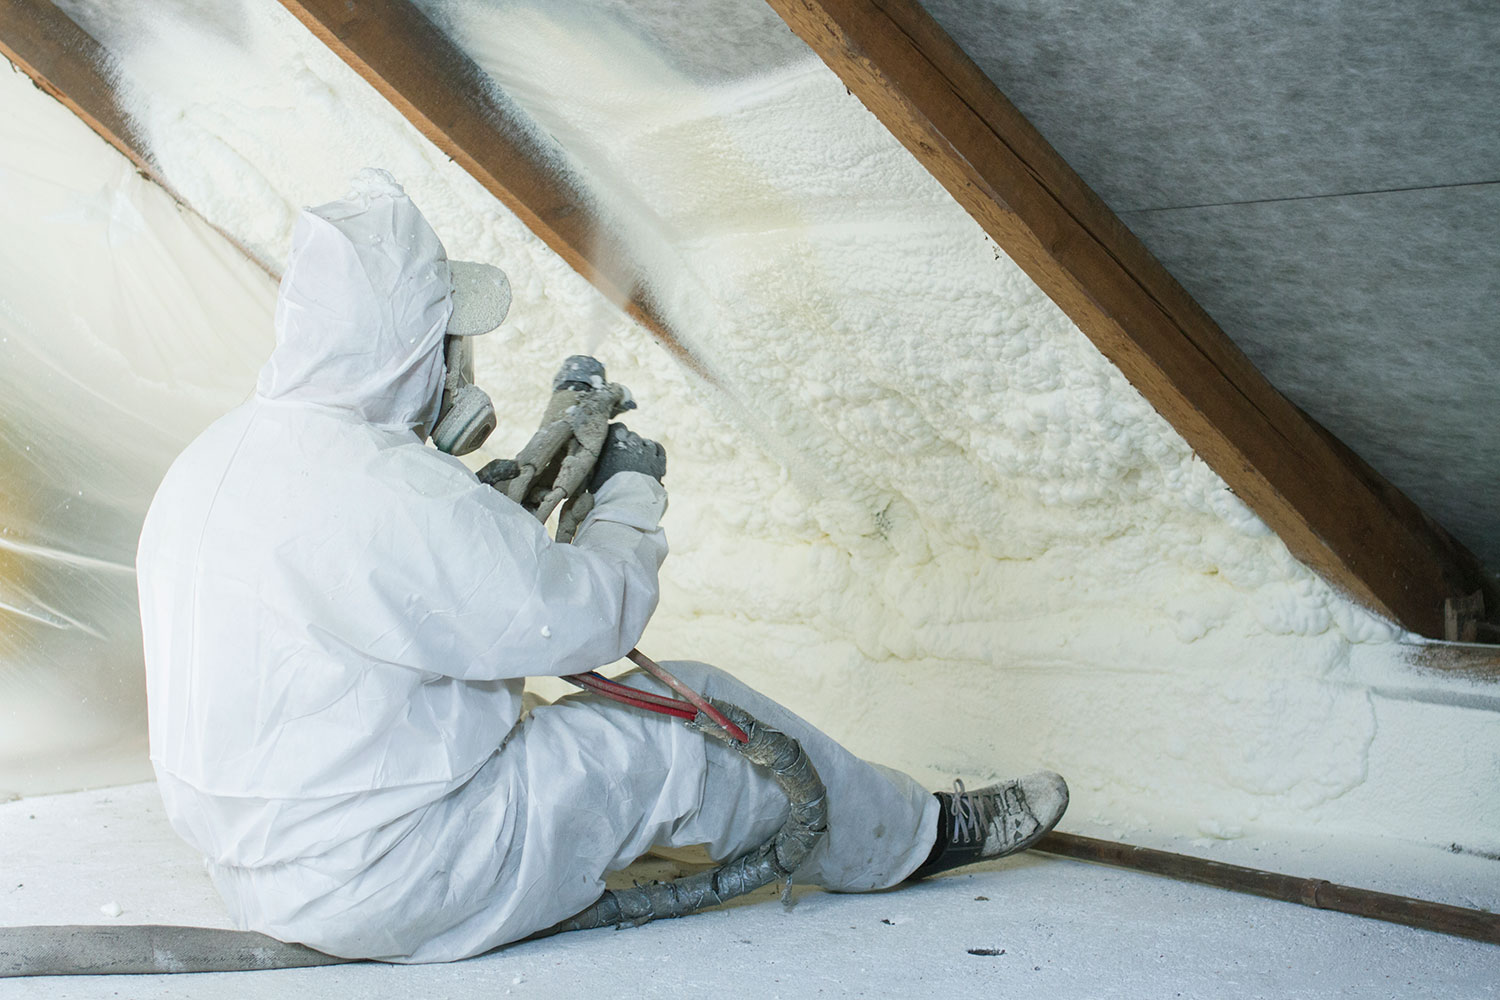 Techinician applying low cost spray foam insulation